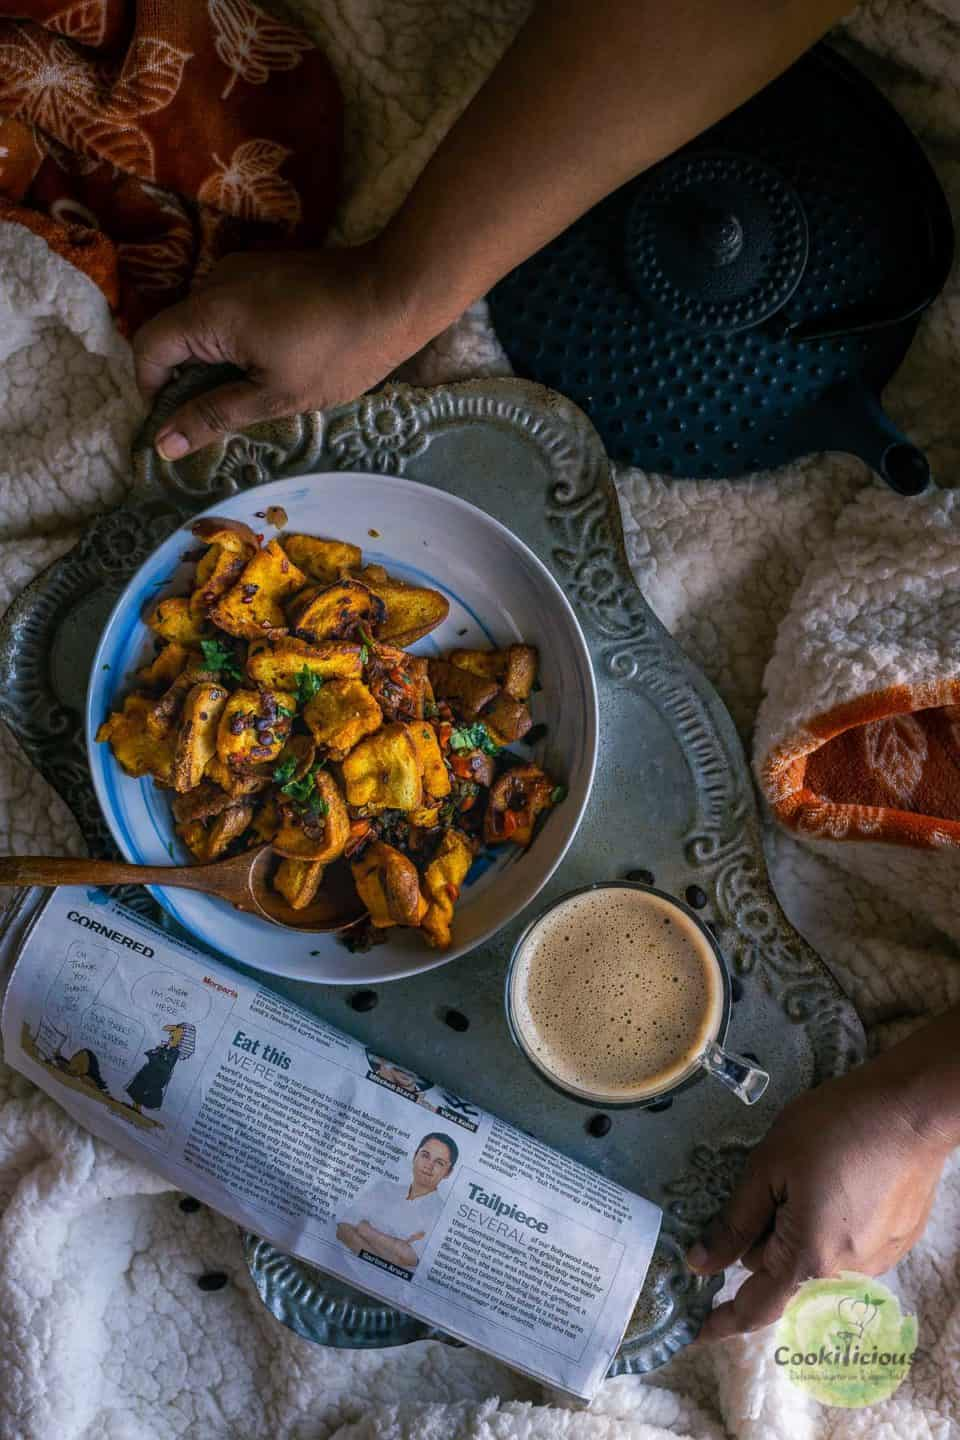 a set of hands placing a tray with coffee, bread upma and newspaper on the bed